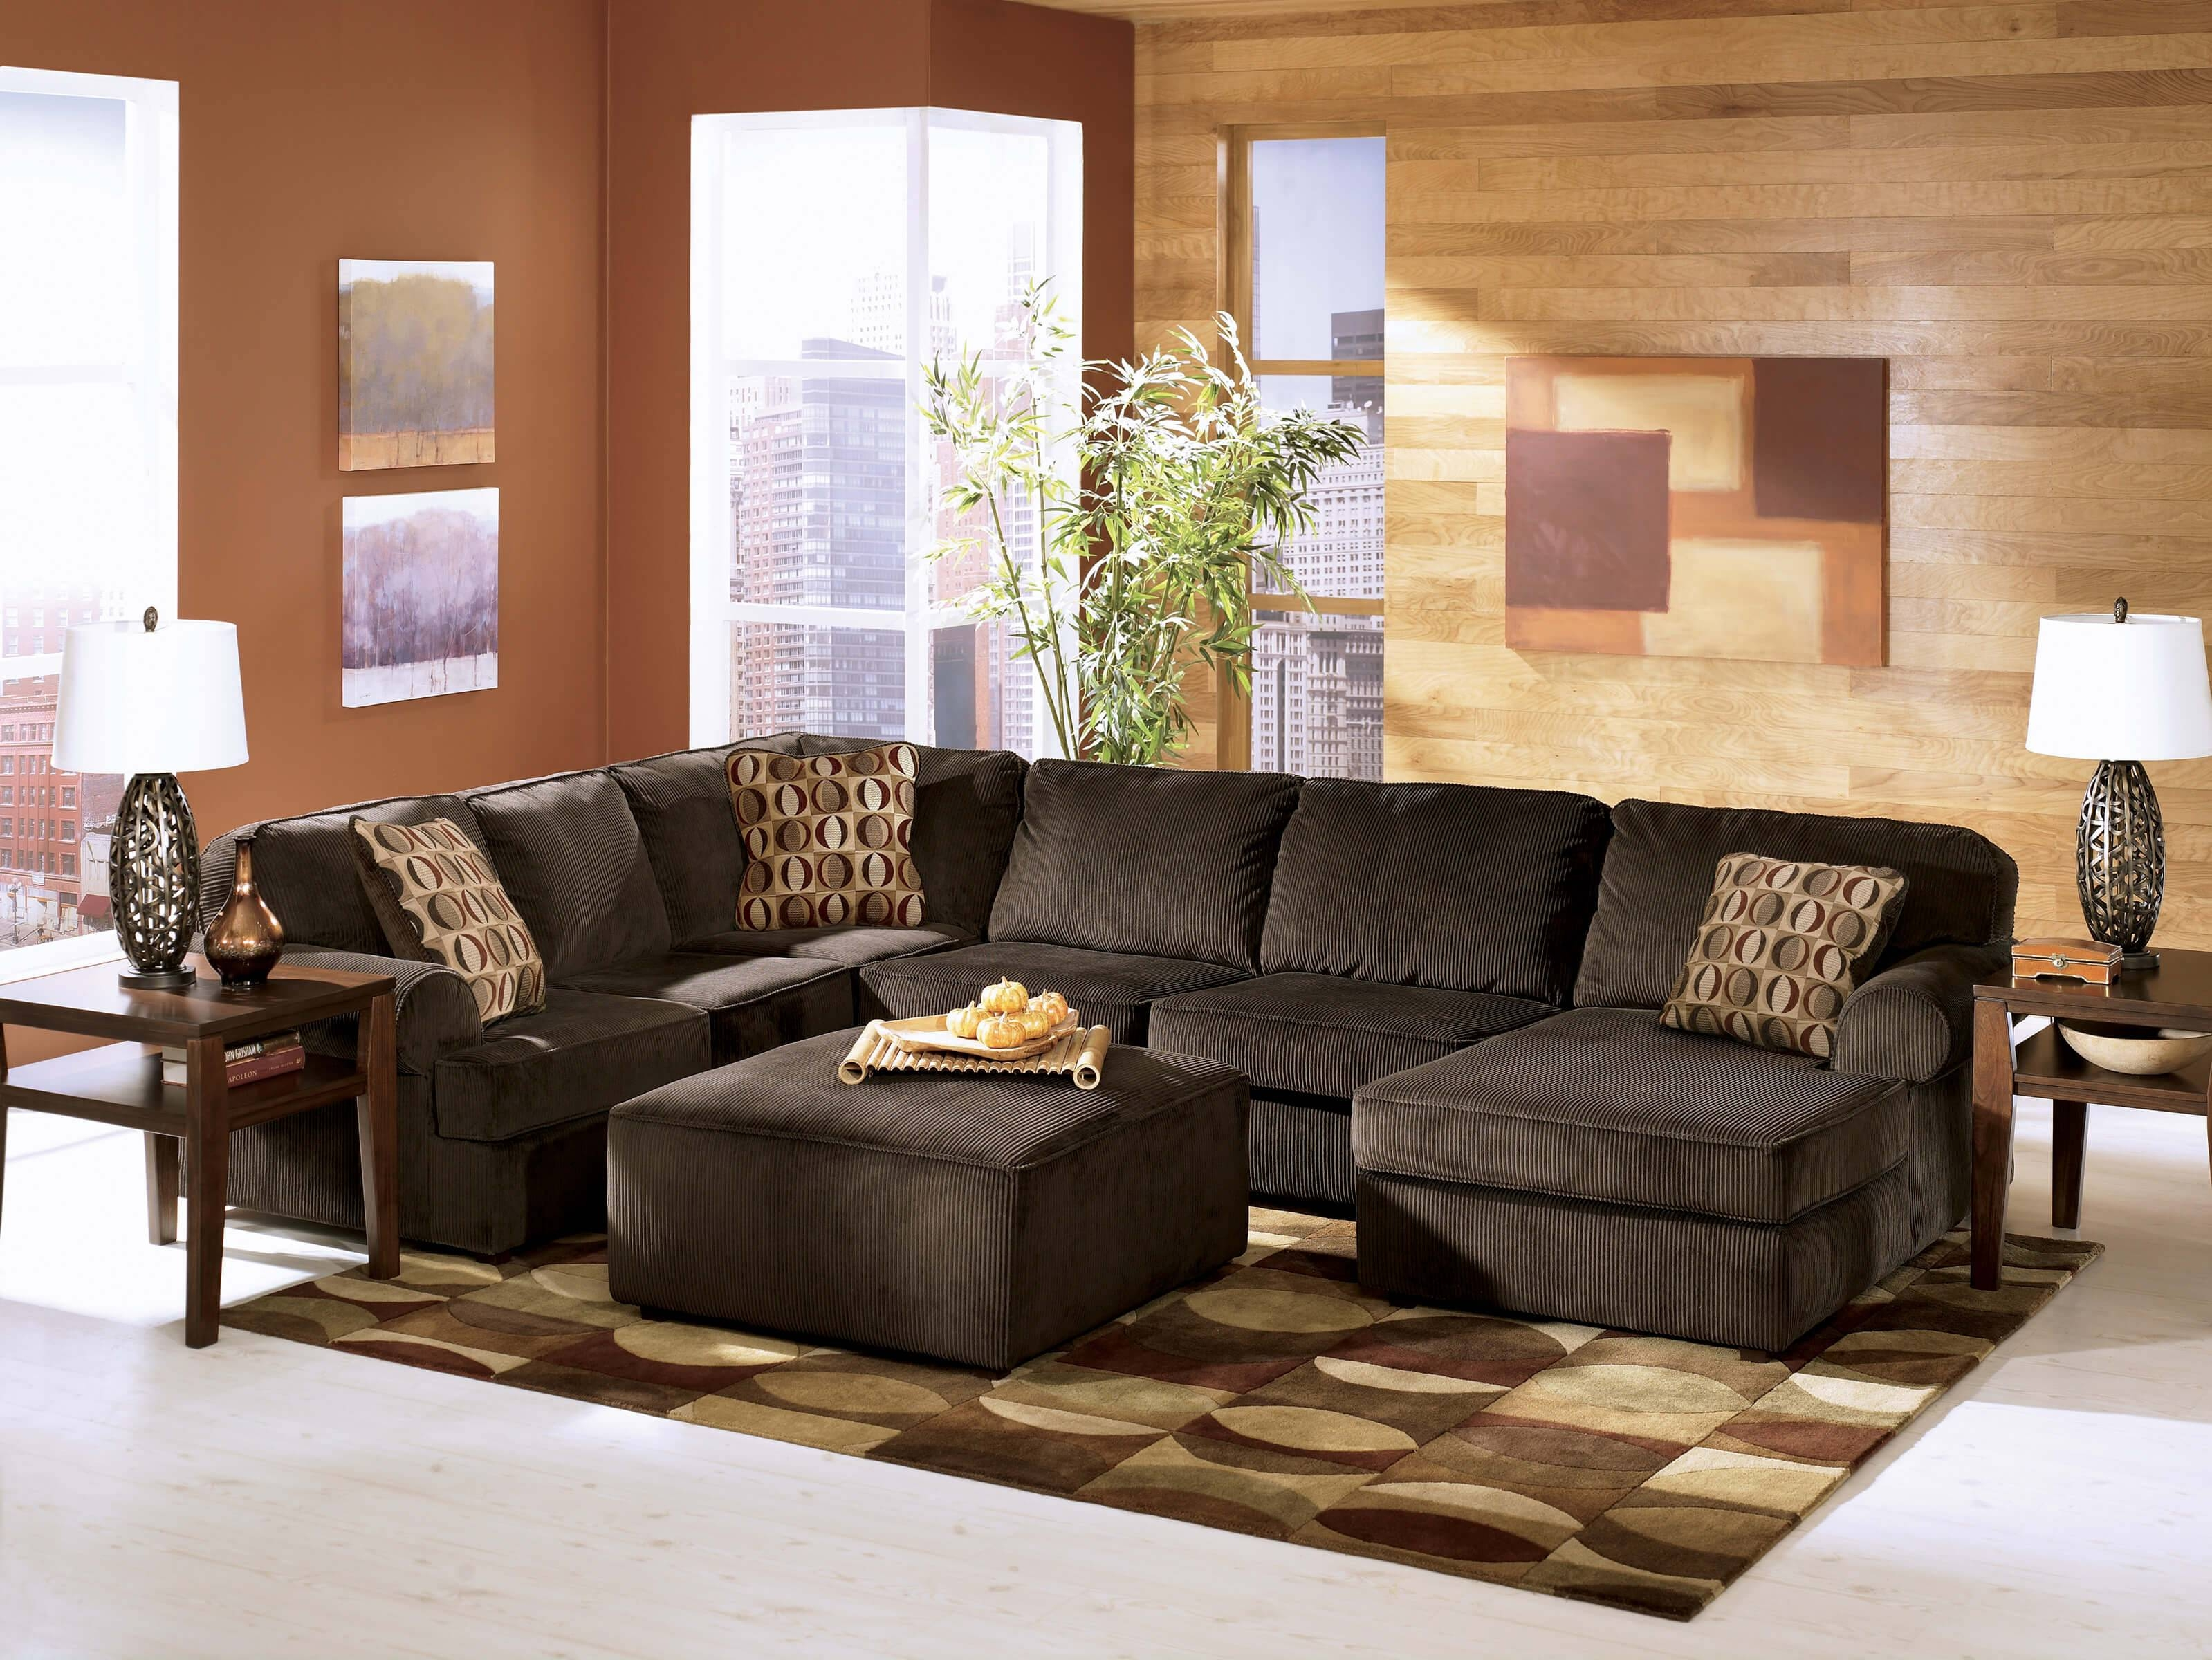 Ashley Furniture Leather Sectional Sofa 67 With Ashley Furniture throughout Ashley Furniture Leather Sectional Sofas (Image 3 of 15)